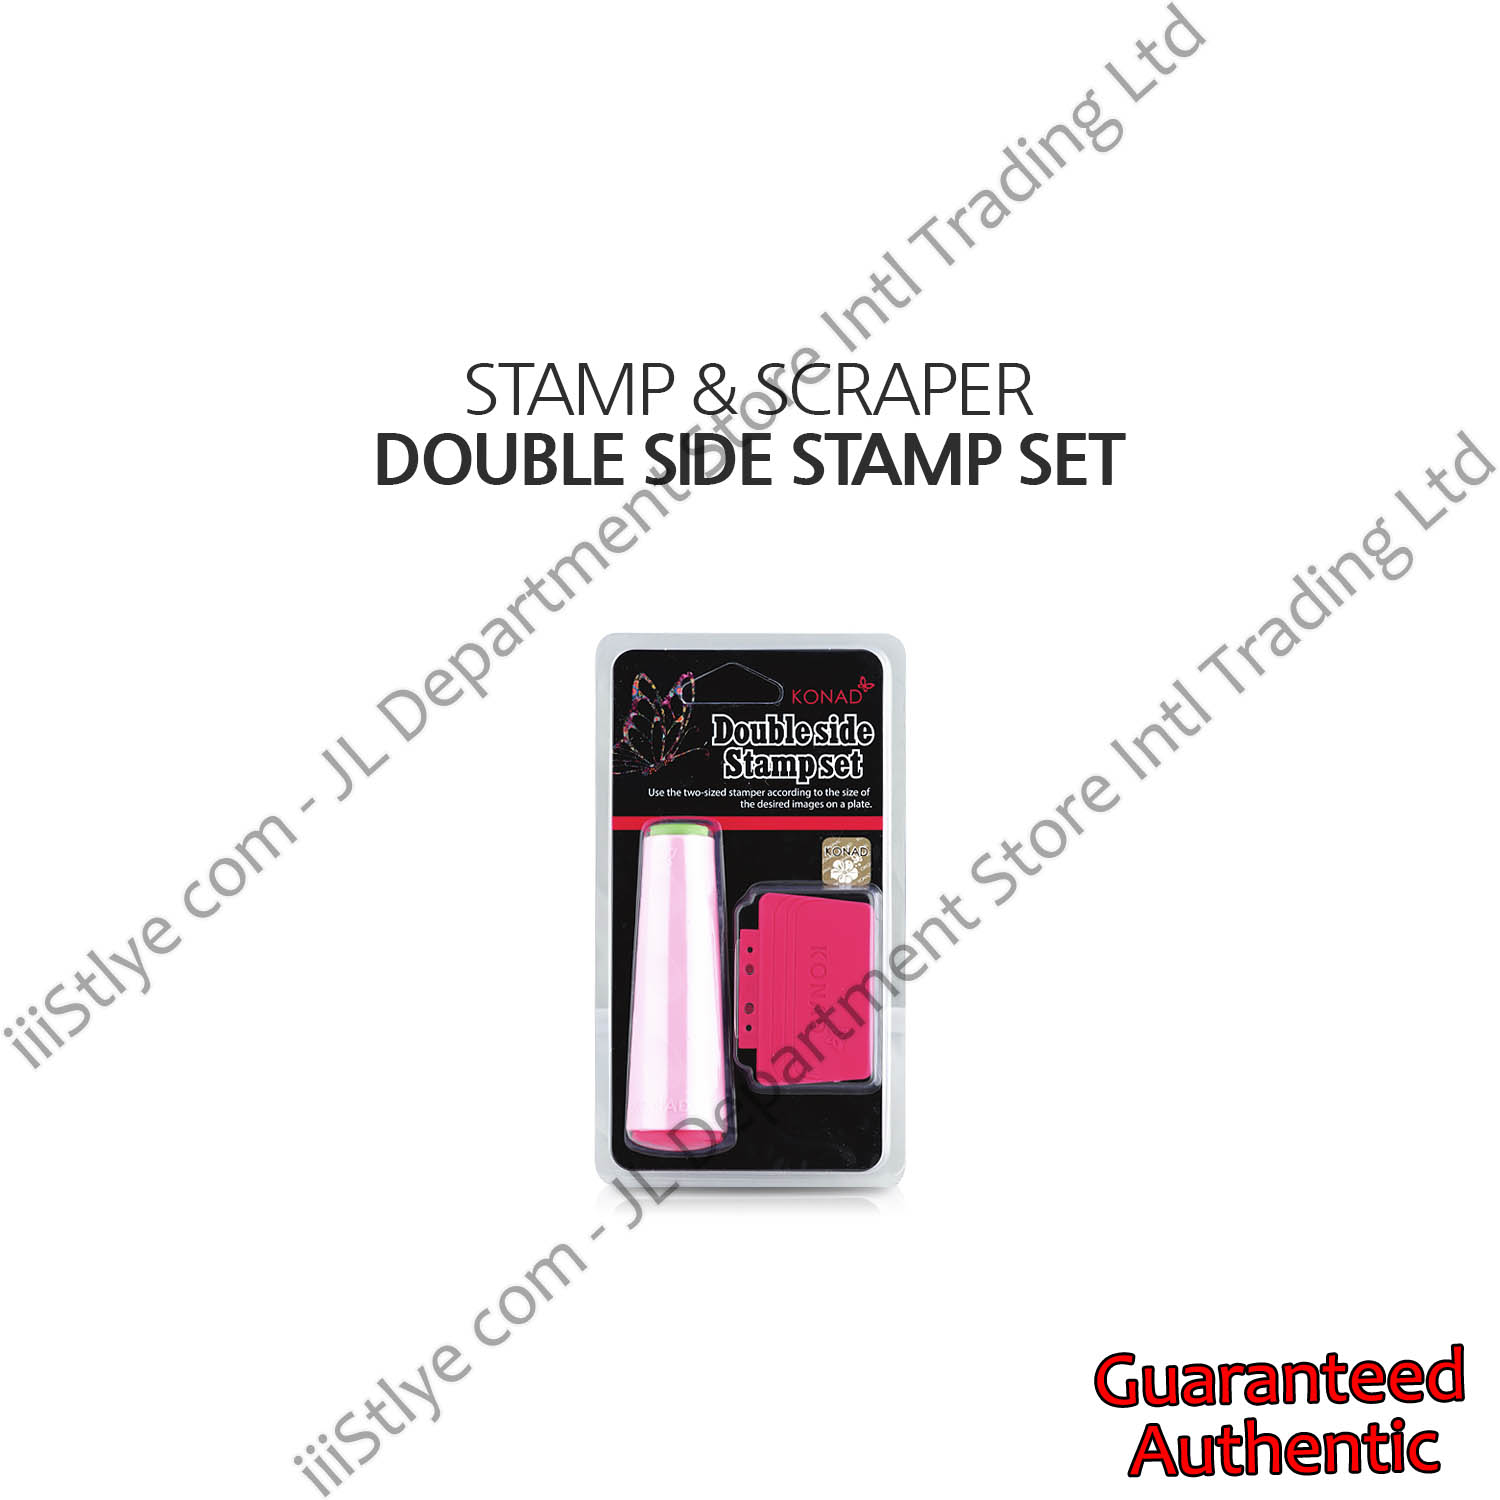 double side stamp set